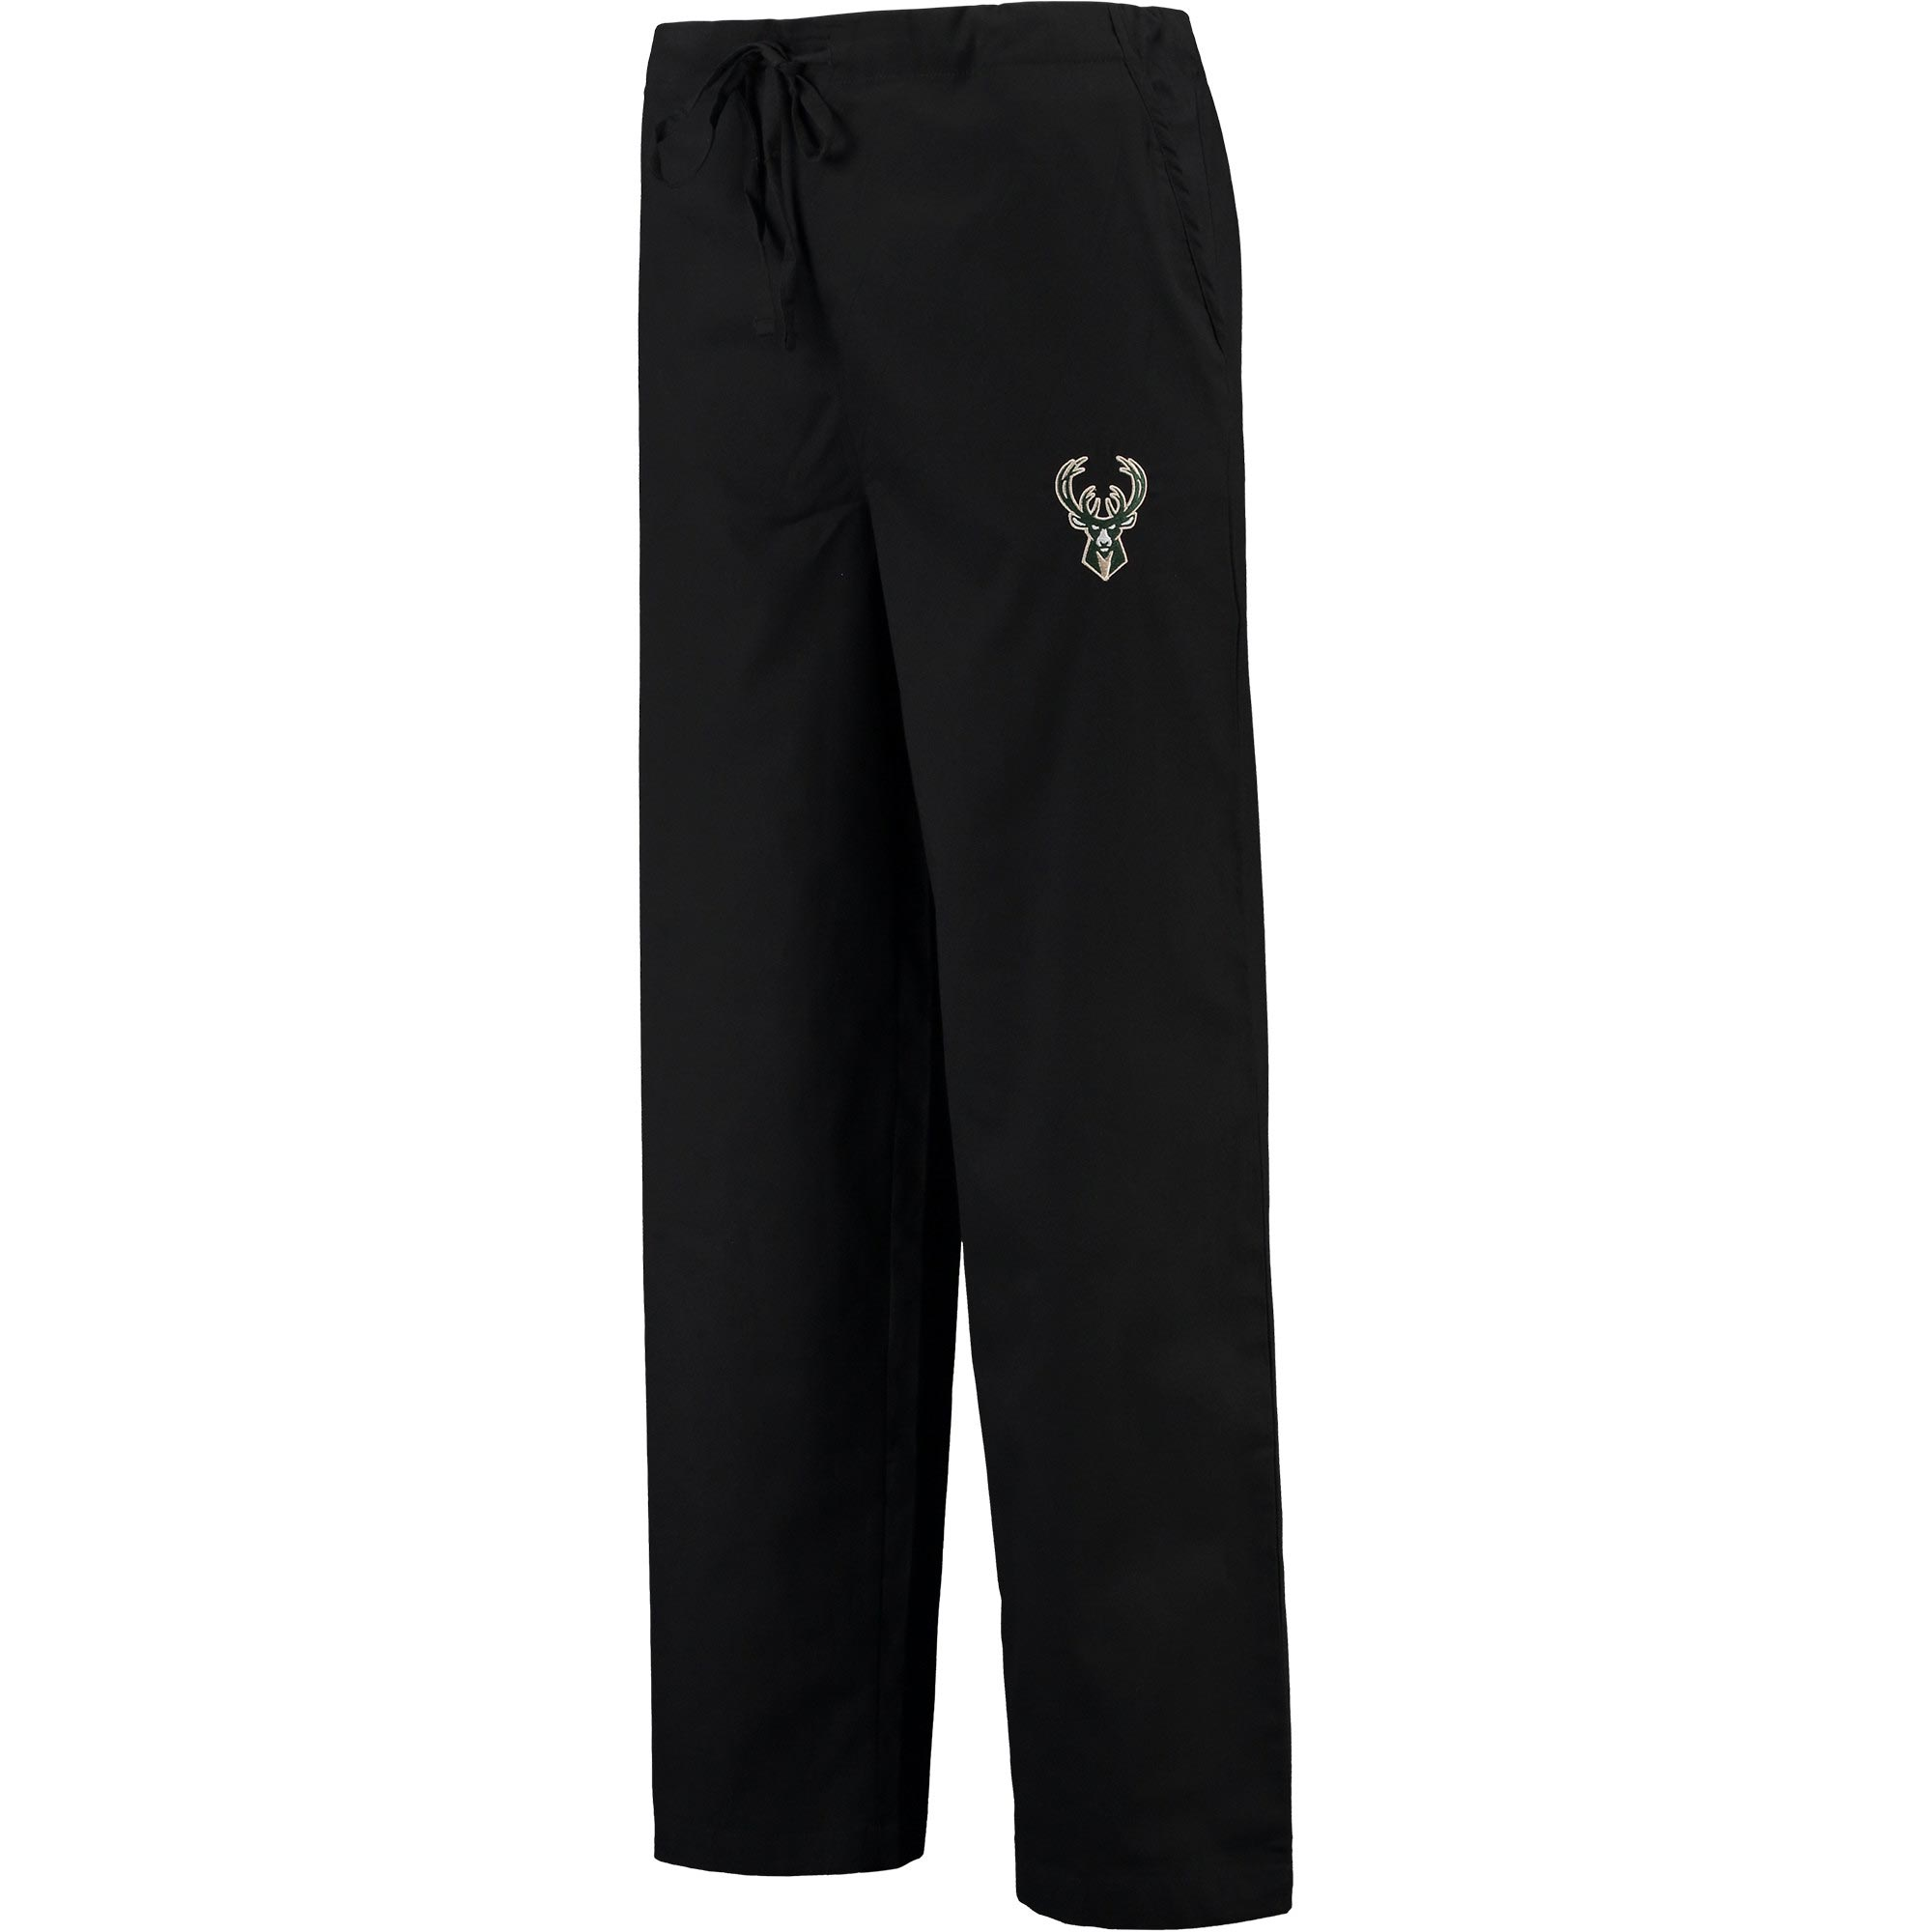 Milwaukee Bucks Concepts Sport Scrub Pants - Black